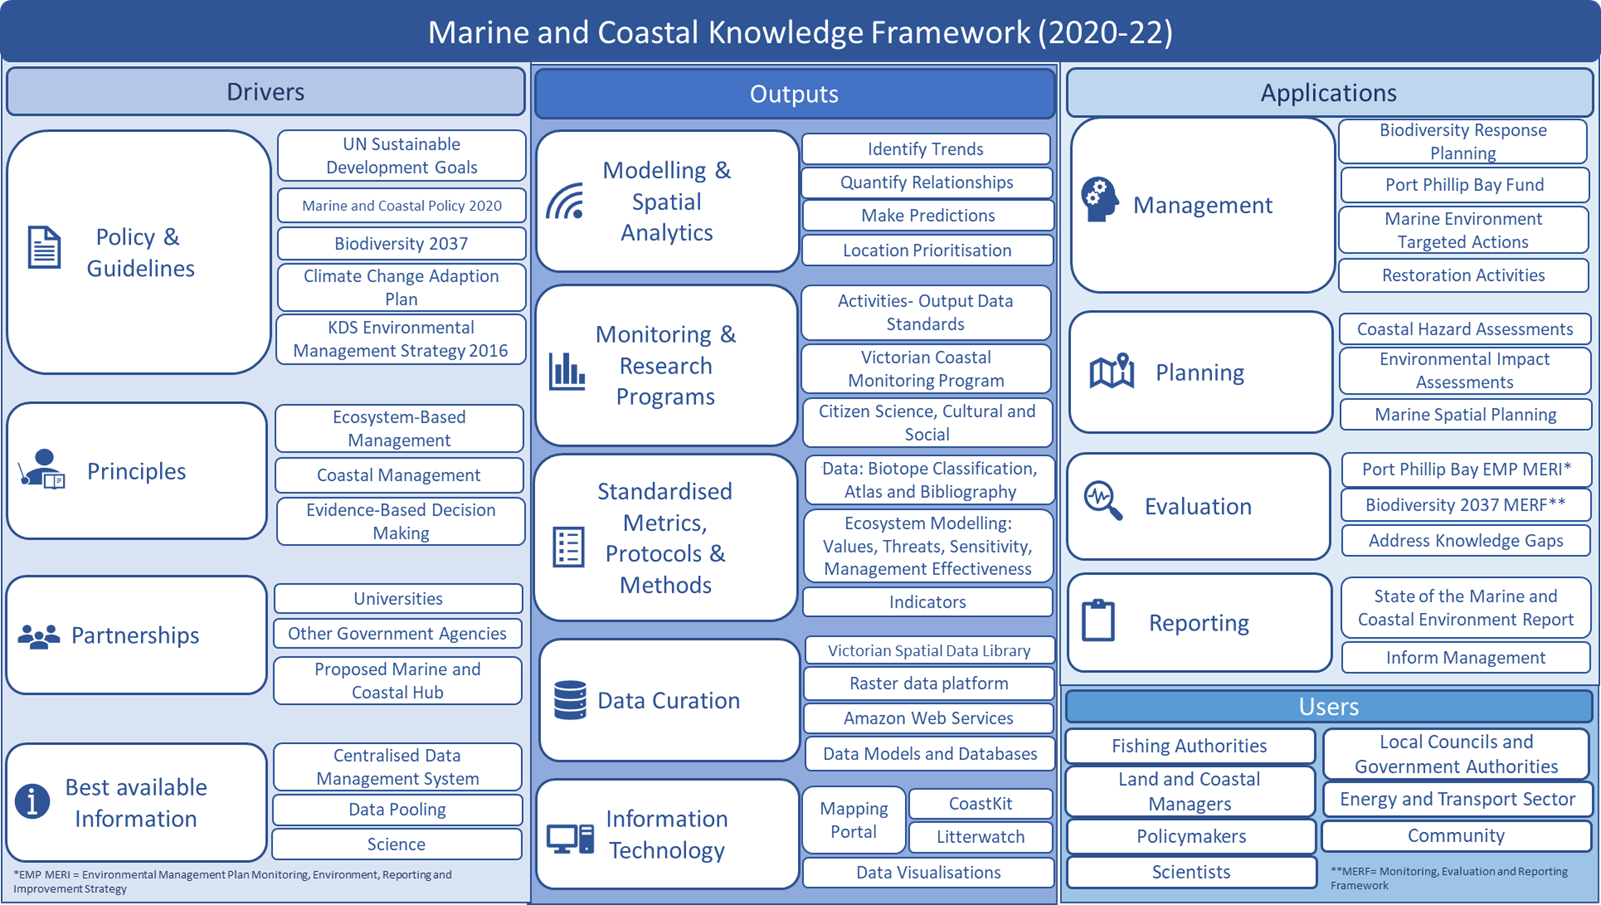 The drivers, outputs, applications and users of the Marine and Coastal Knowledge Framework